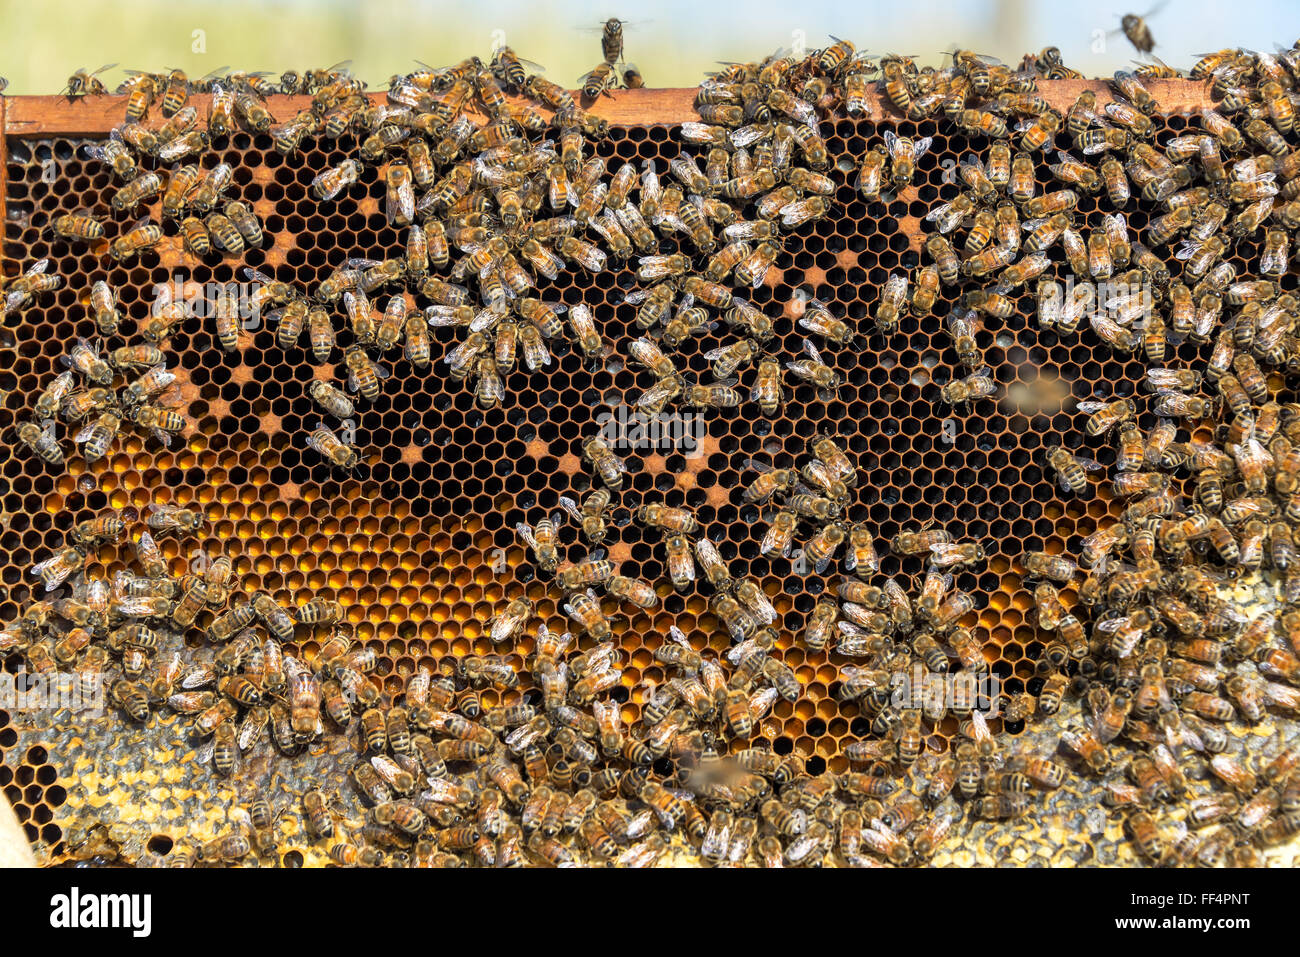 View of the inside of a beehive near Sheridan, Wyoming - Stock Image